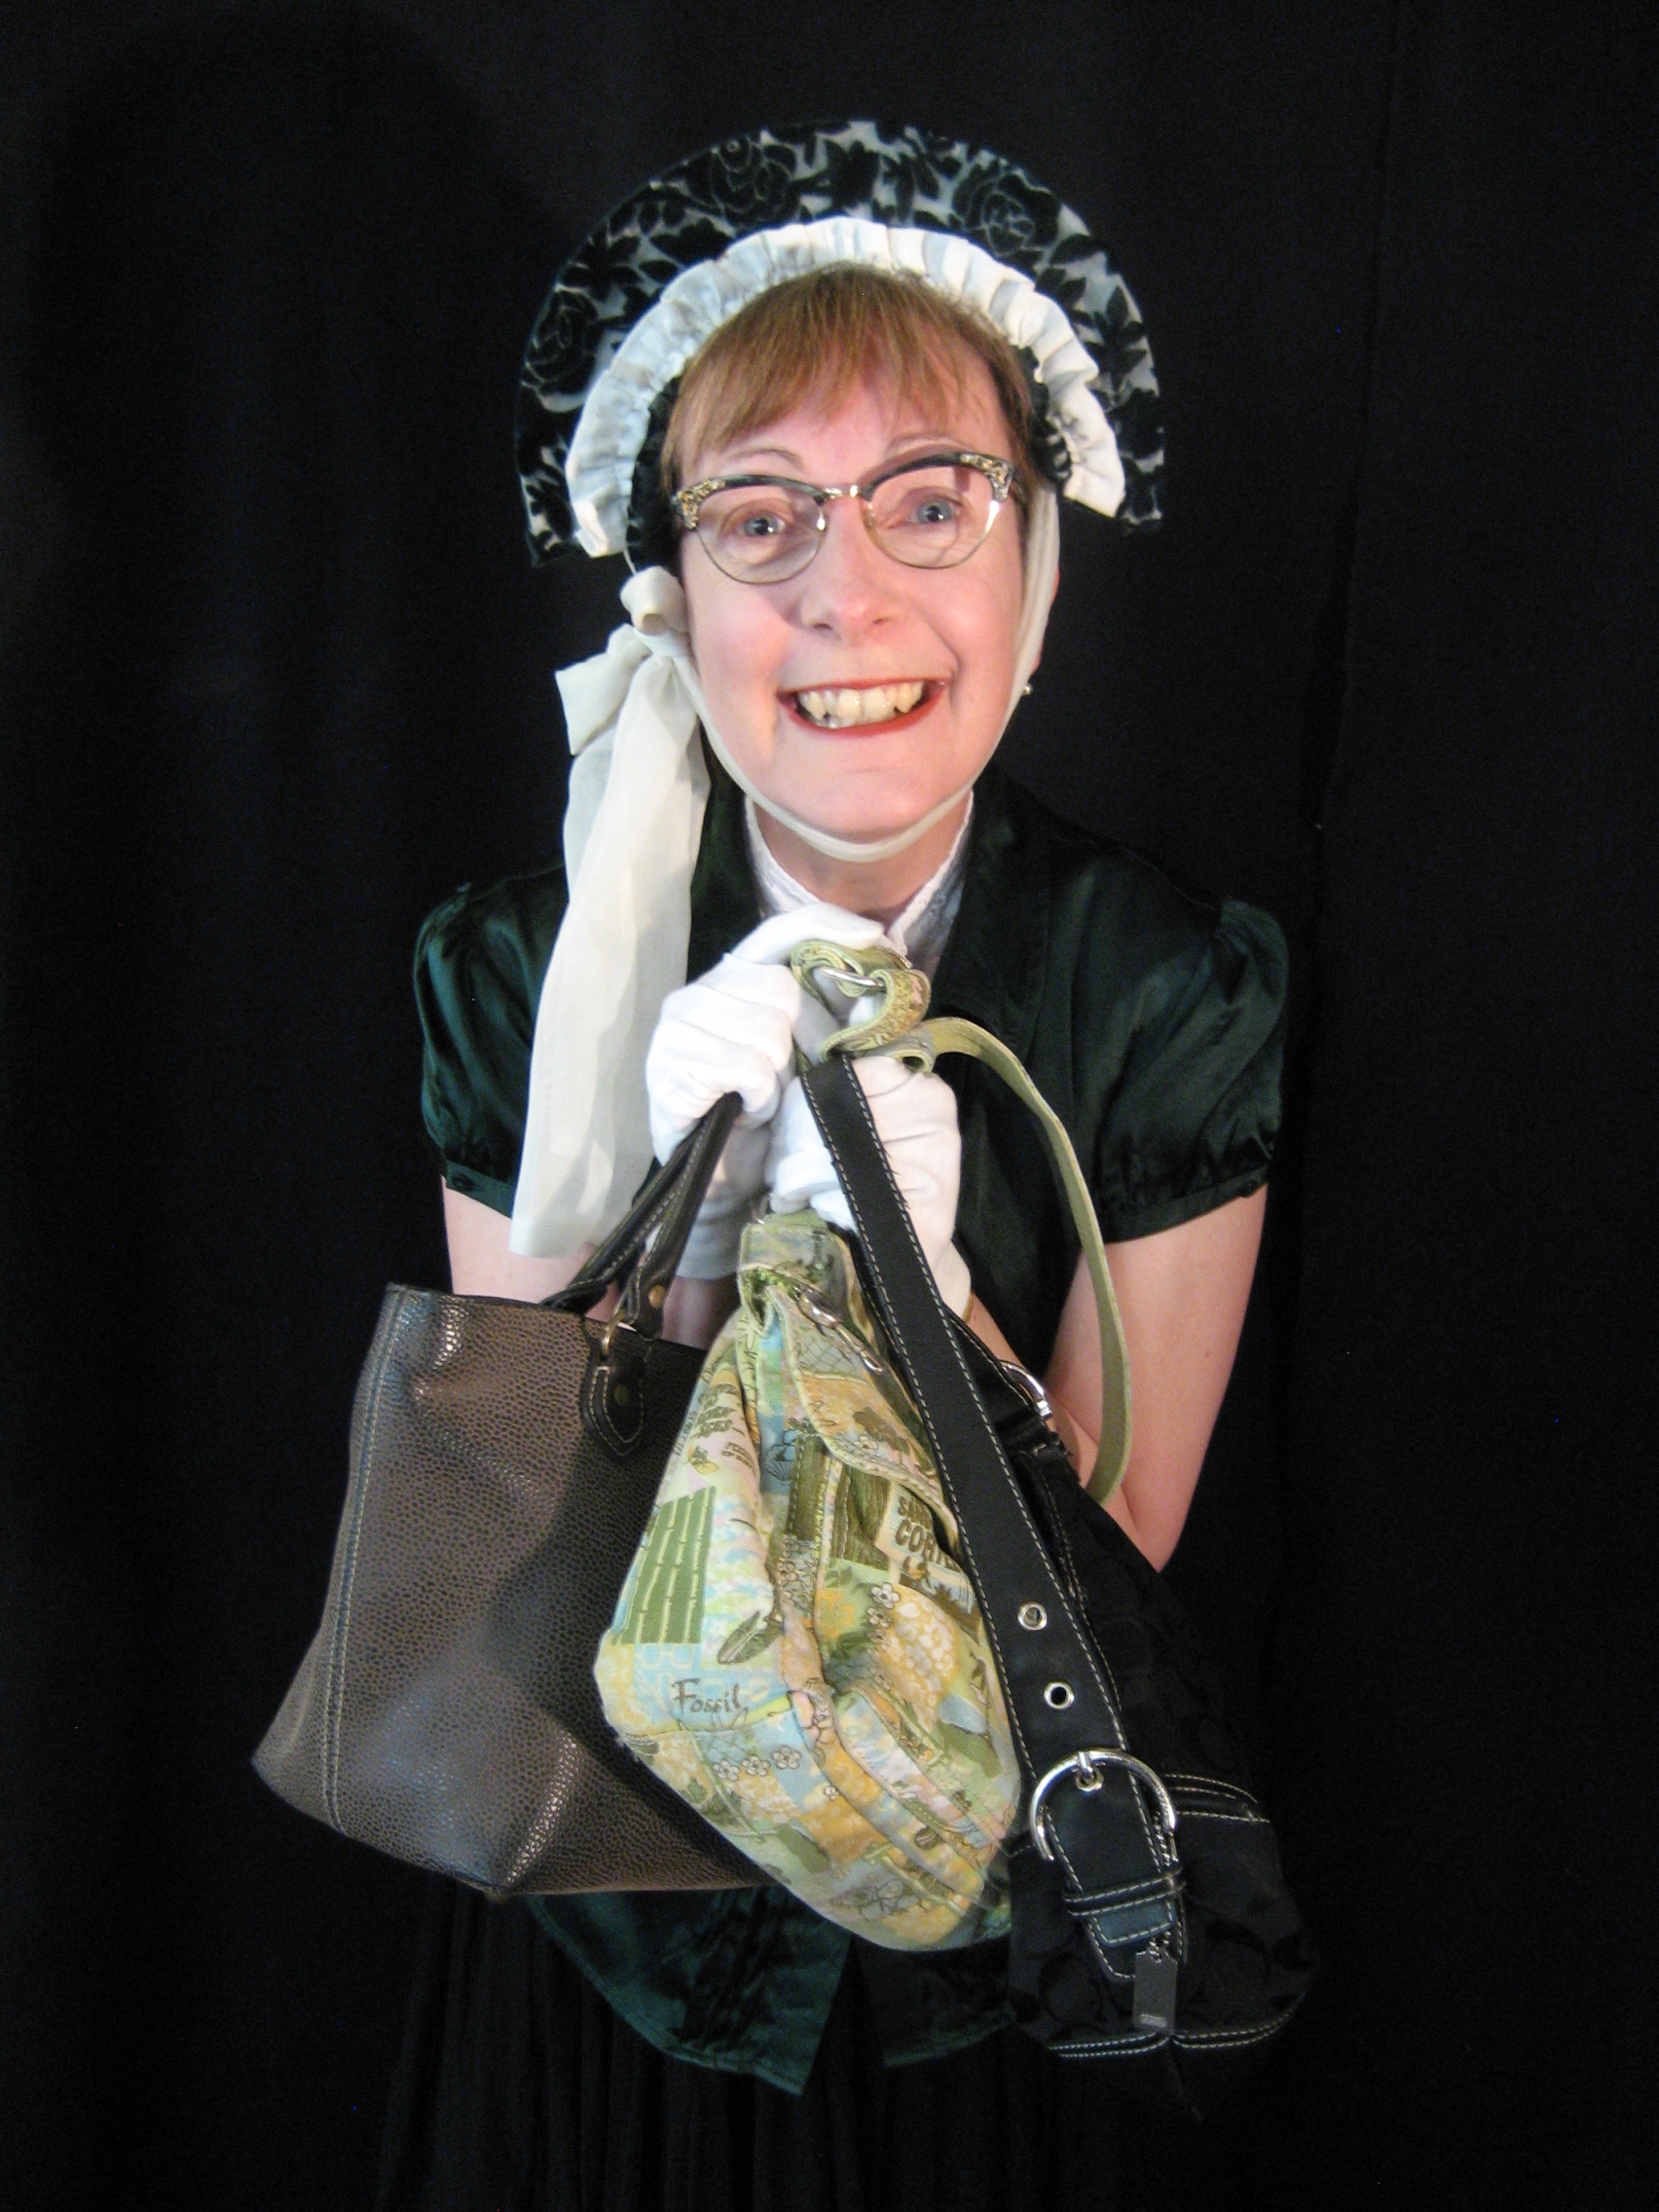 The Handbagler (Angela Towndrow) is armed and dangerous.